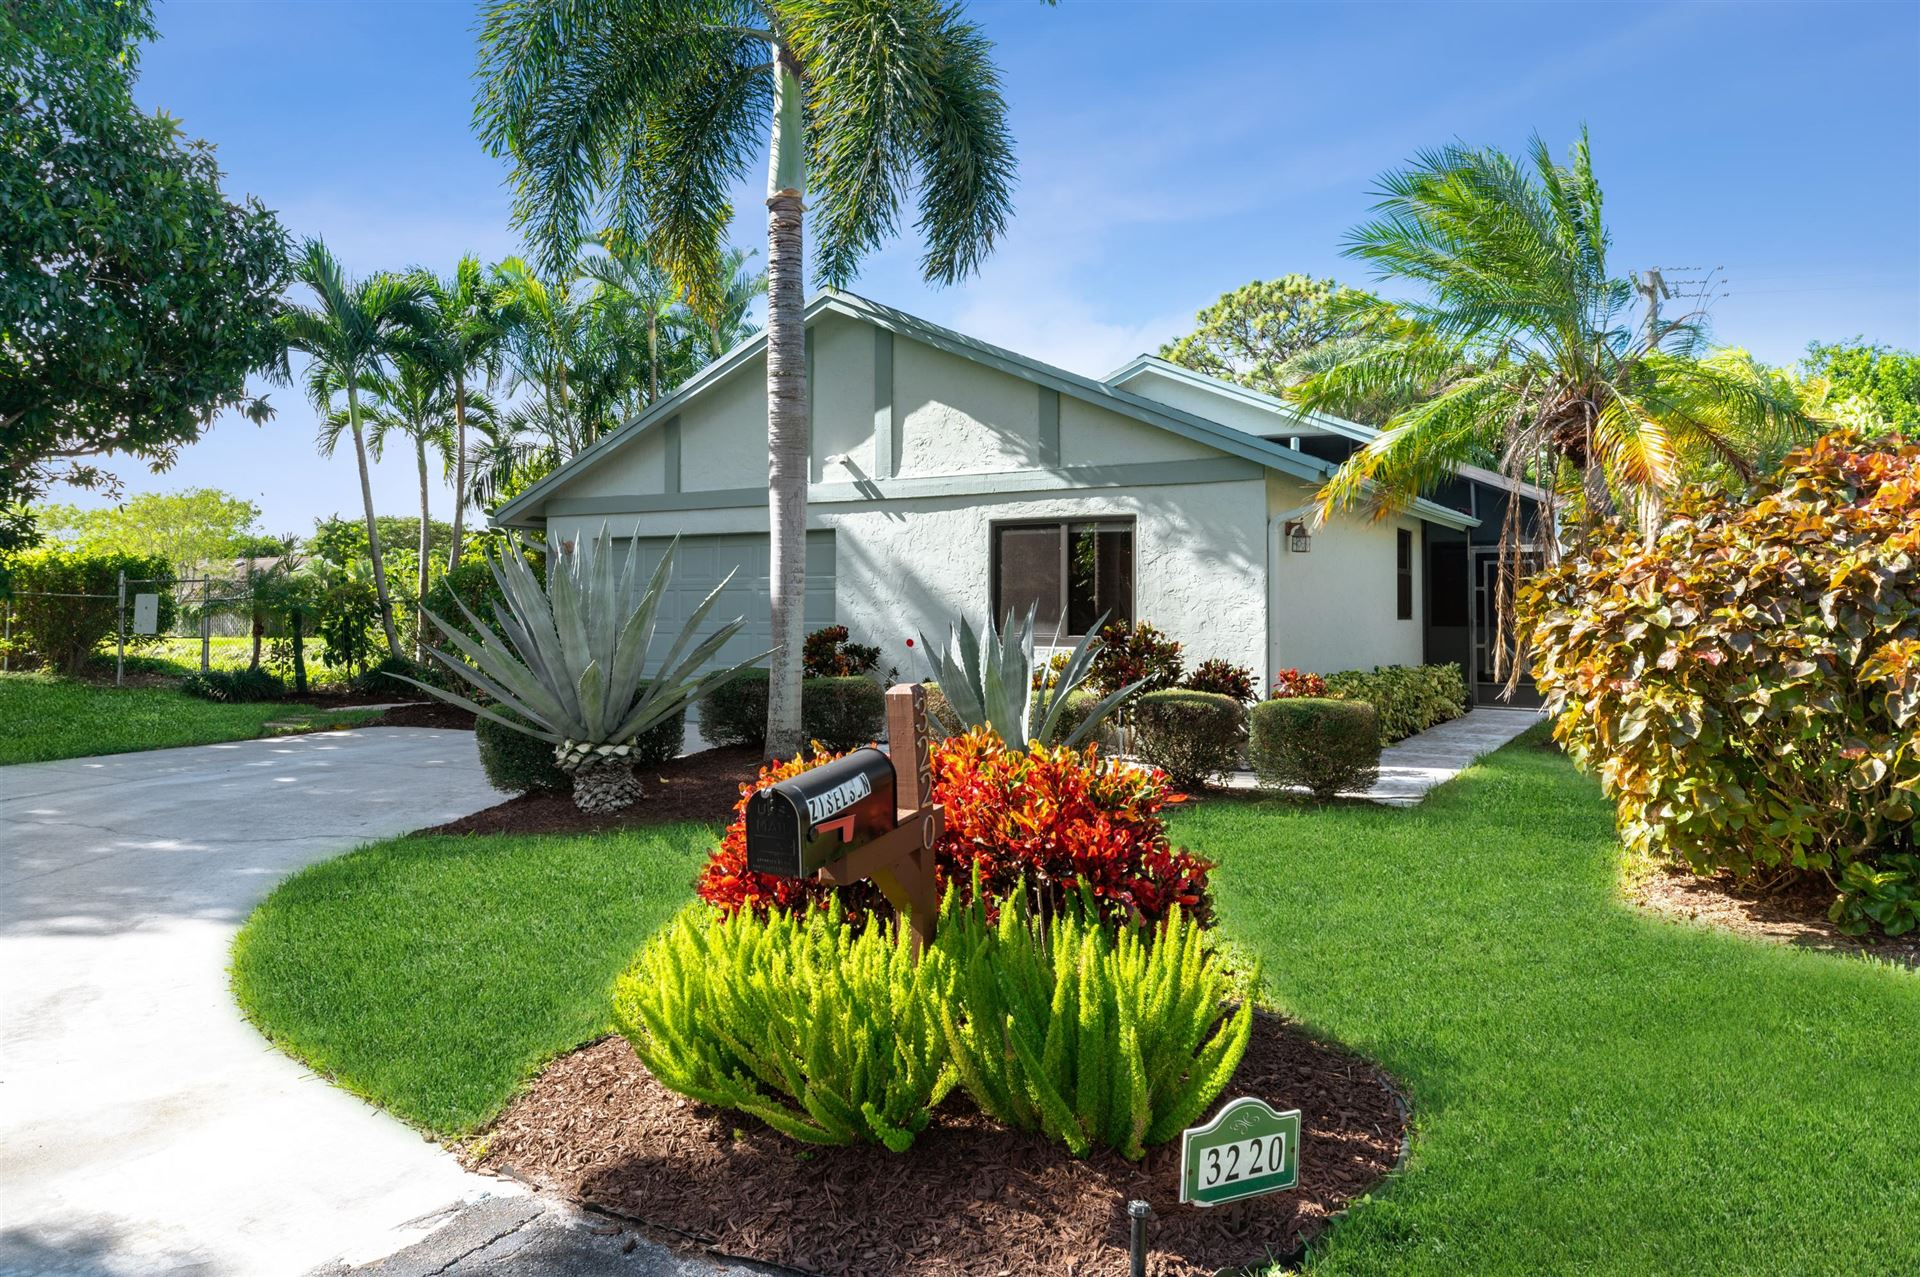 3220 NW 10th Place, Delray Beach, FL 33445 - #: RX-10673363